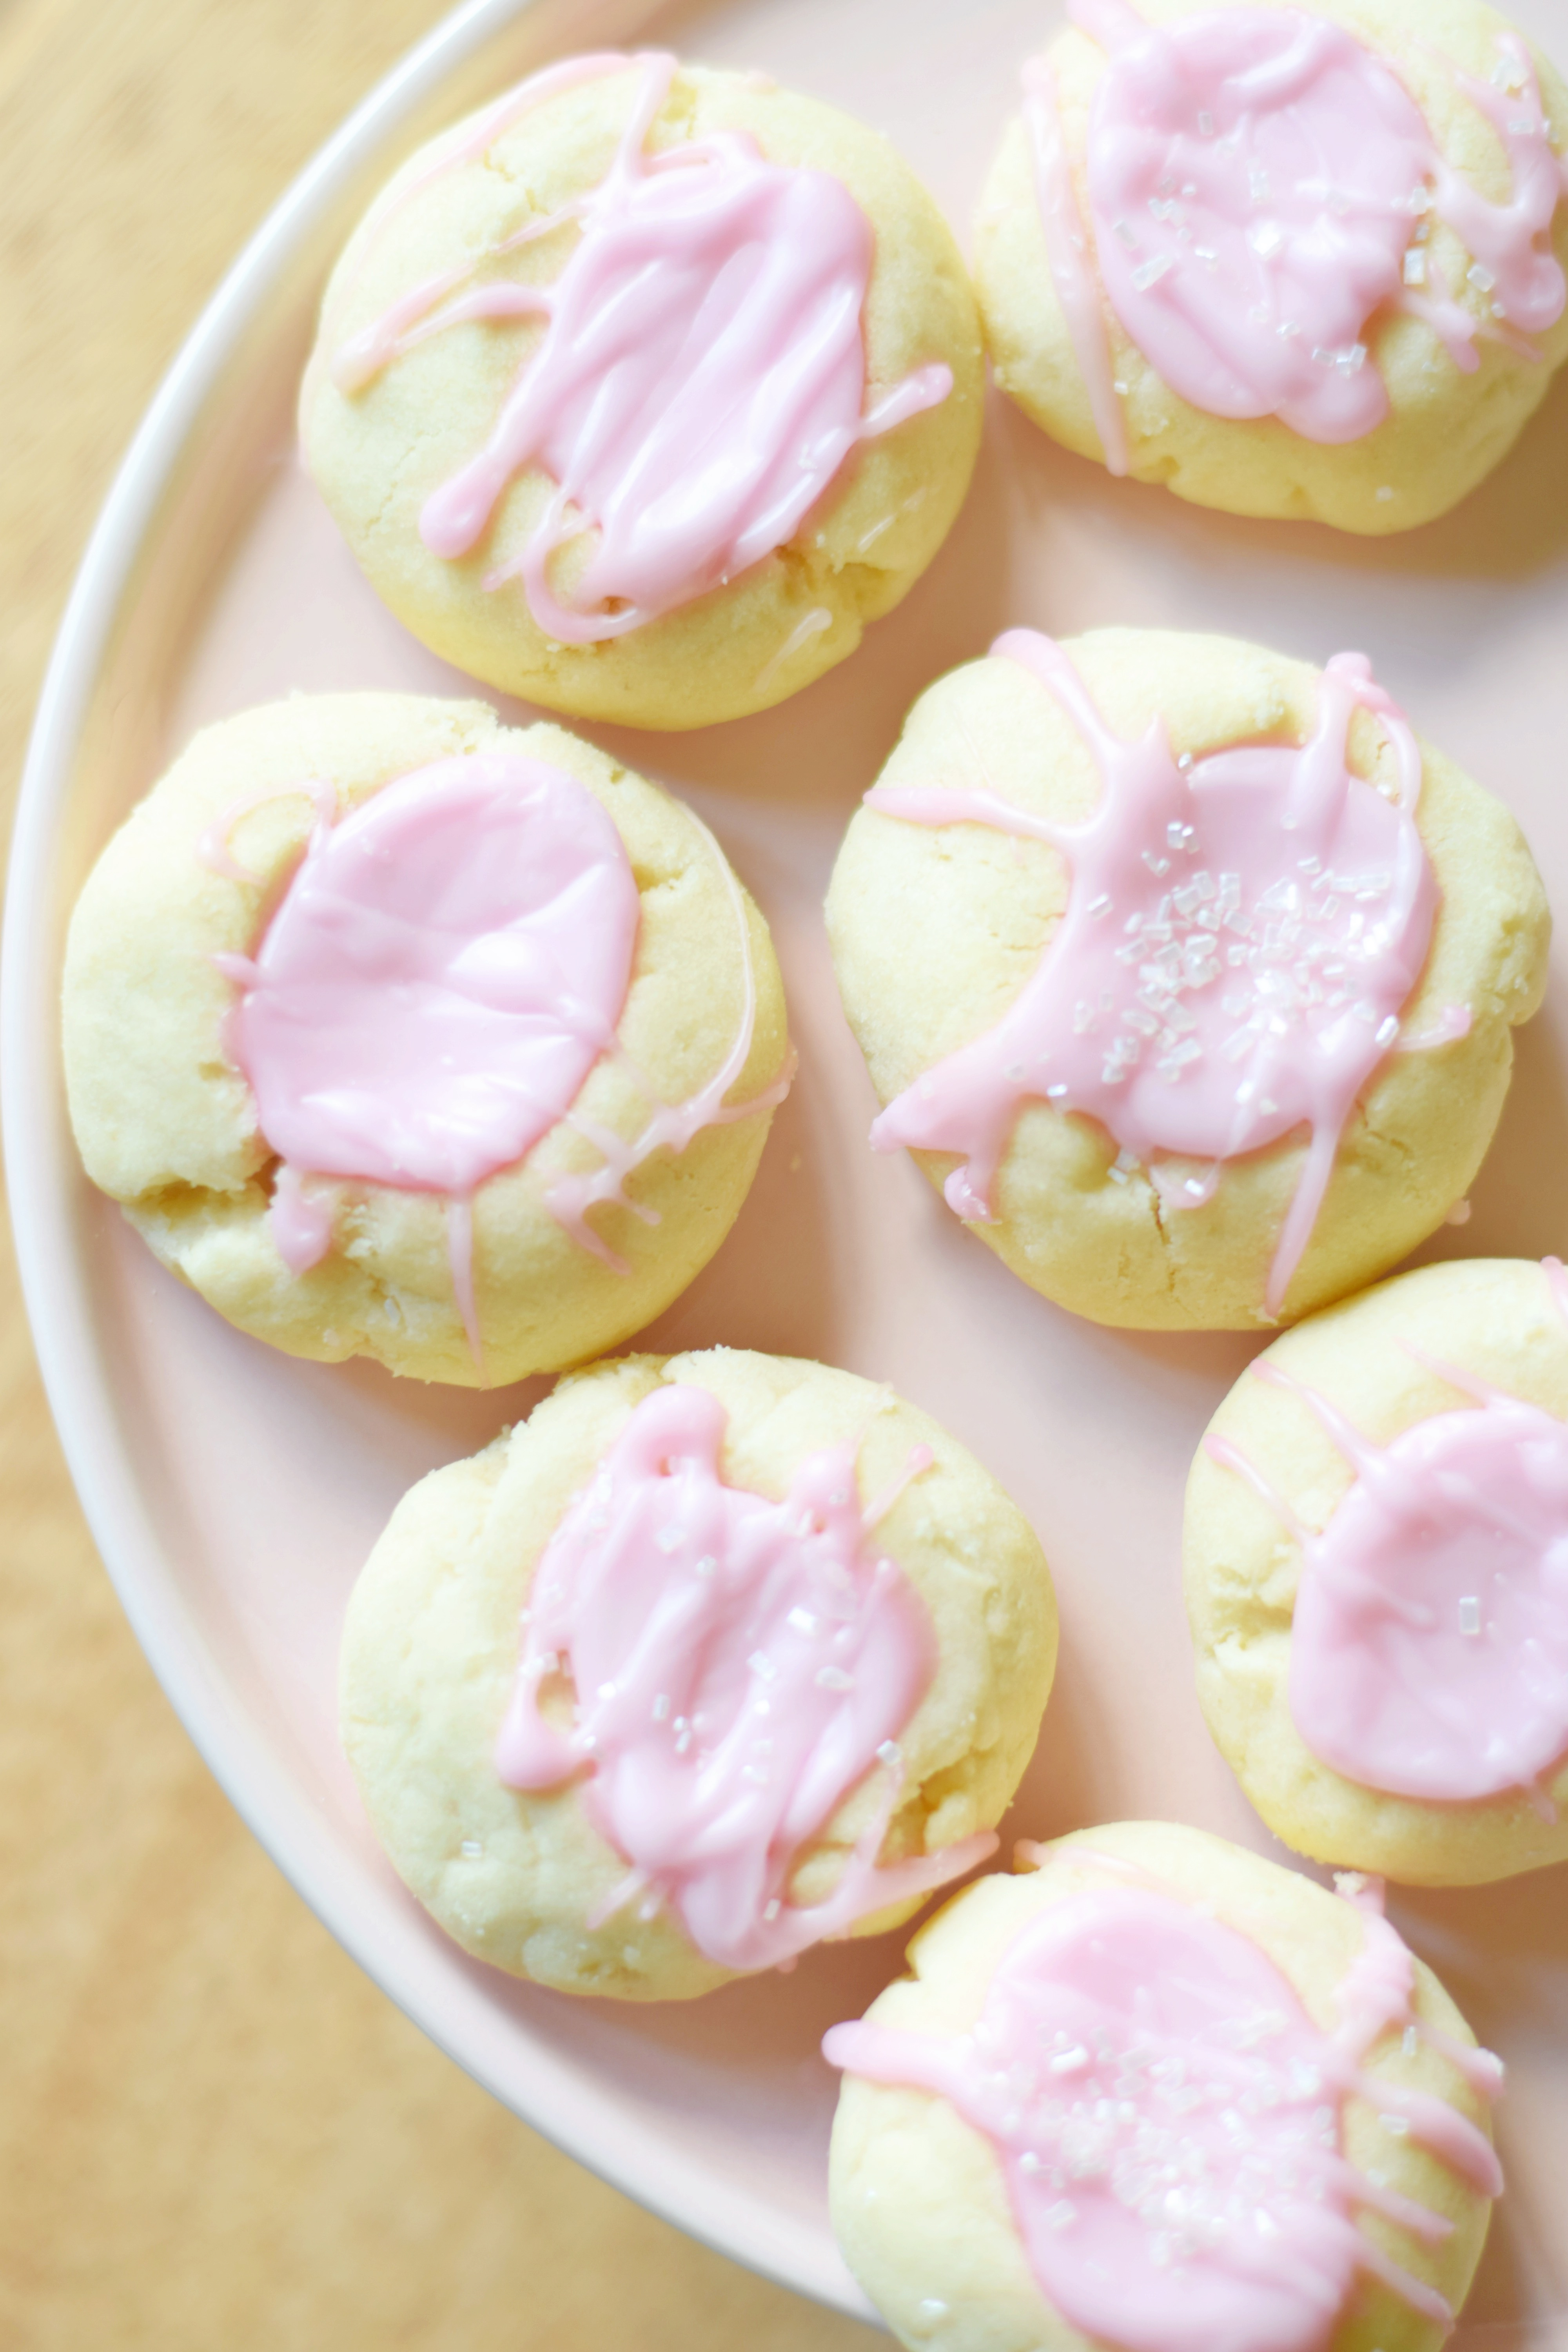 15-Minute Shortbread Cookies - Easy Shortbread Recipe - Thumbprint Shortbread Recipe - Shortbread Bites - Easy Cookie Recipe - Fast Cookie Recipe - Gluten Free Cookie - Communikait by Kait Hanson